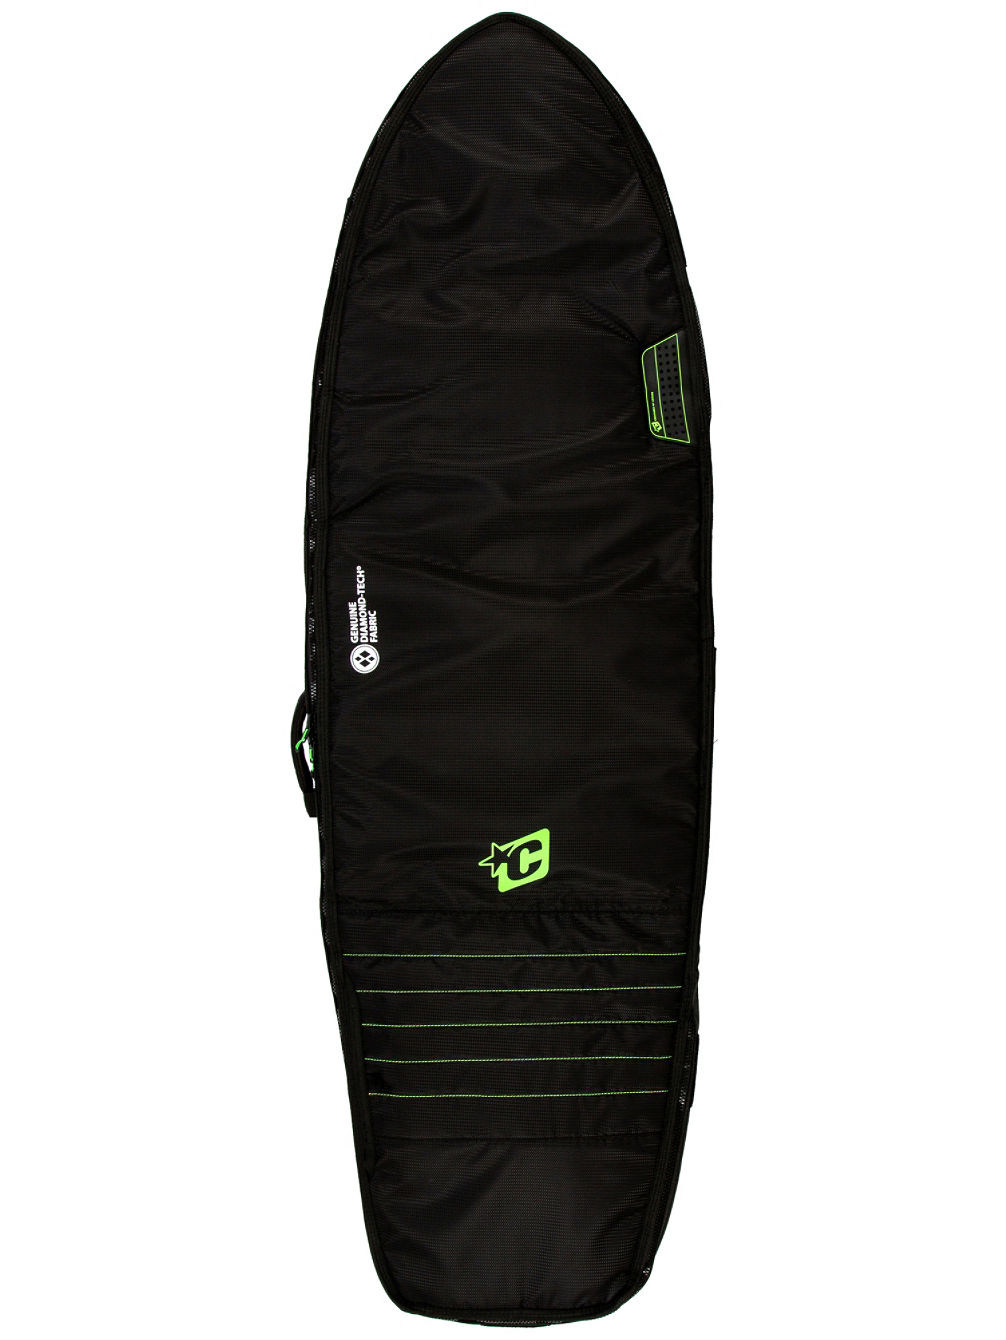 Fish Double 6'7 Surfboard Bag